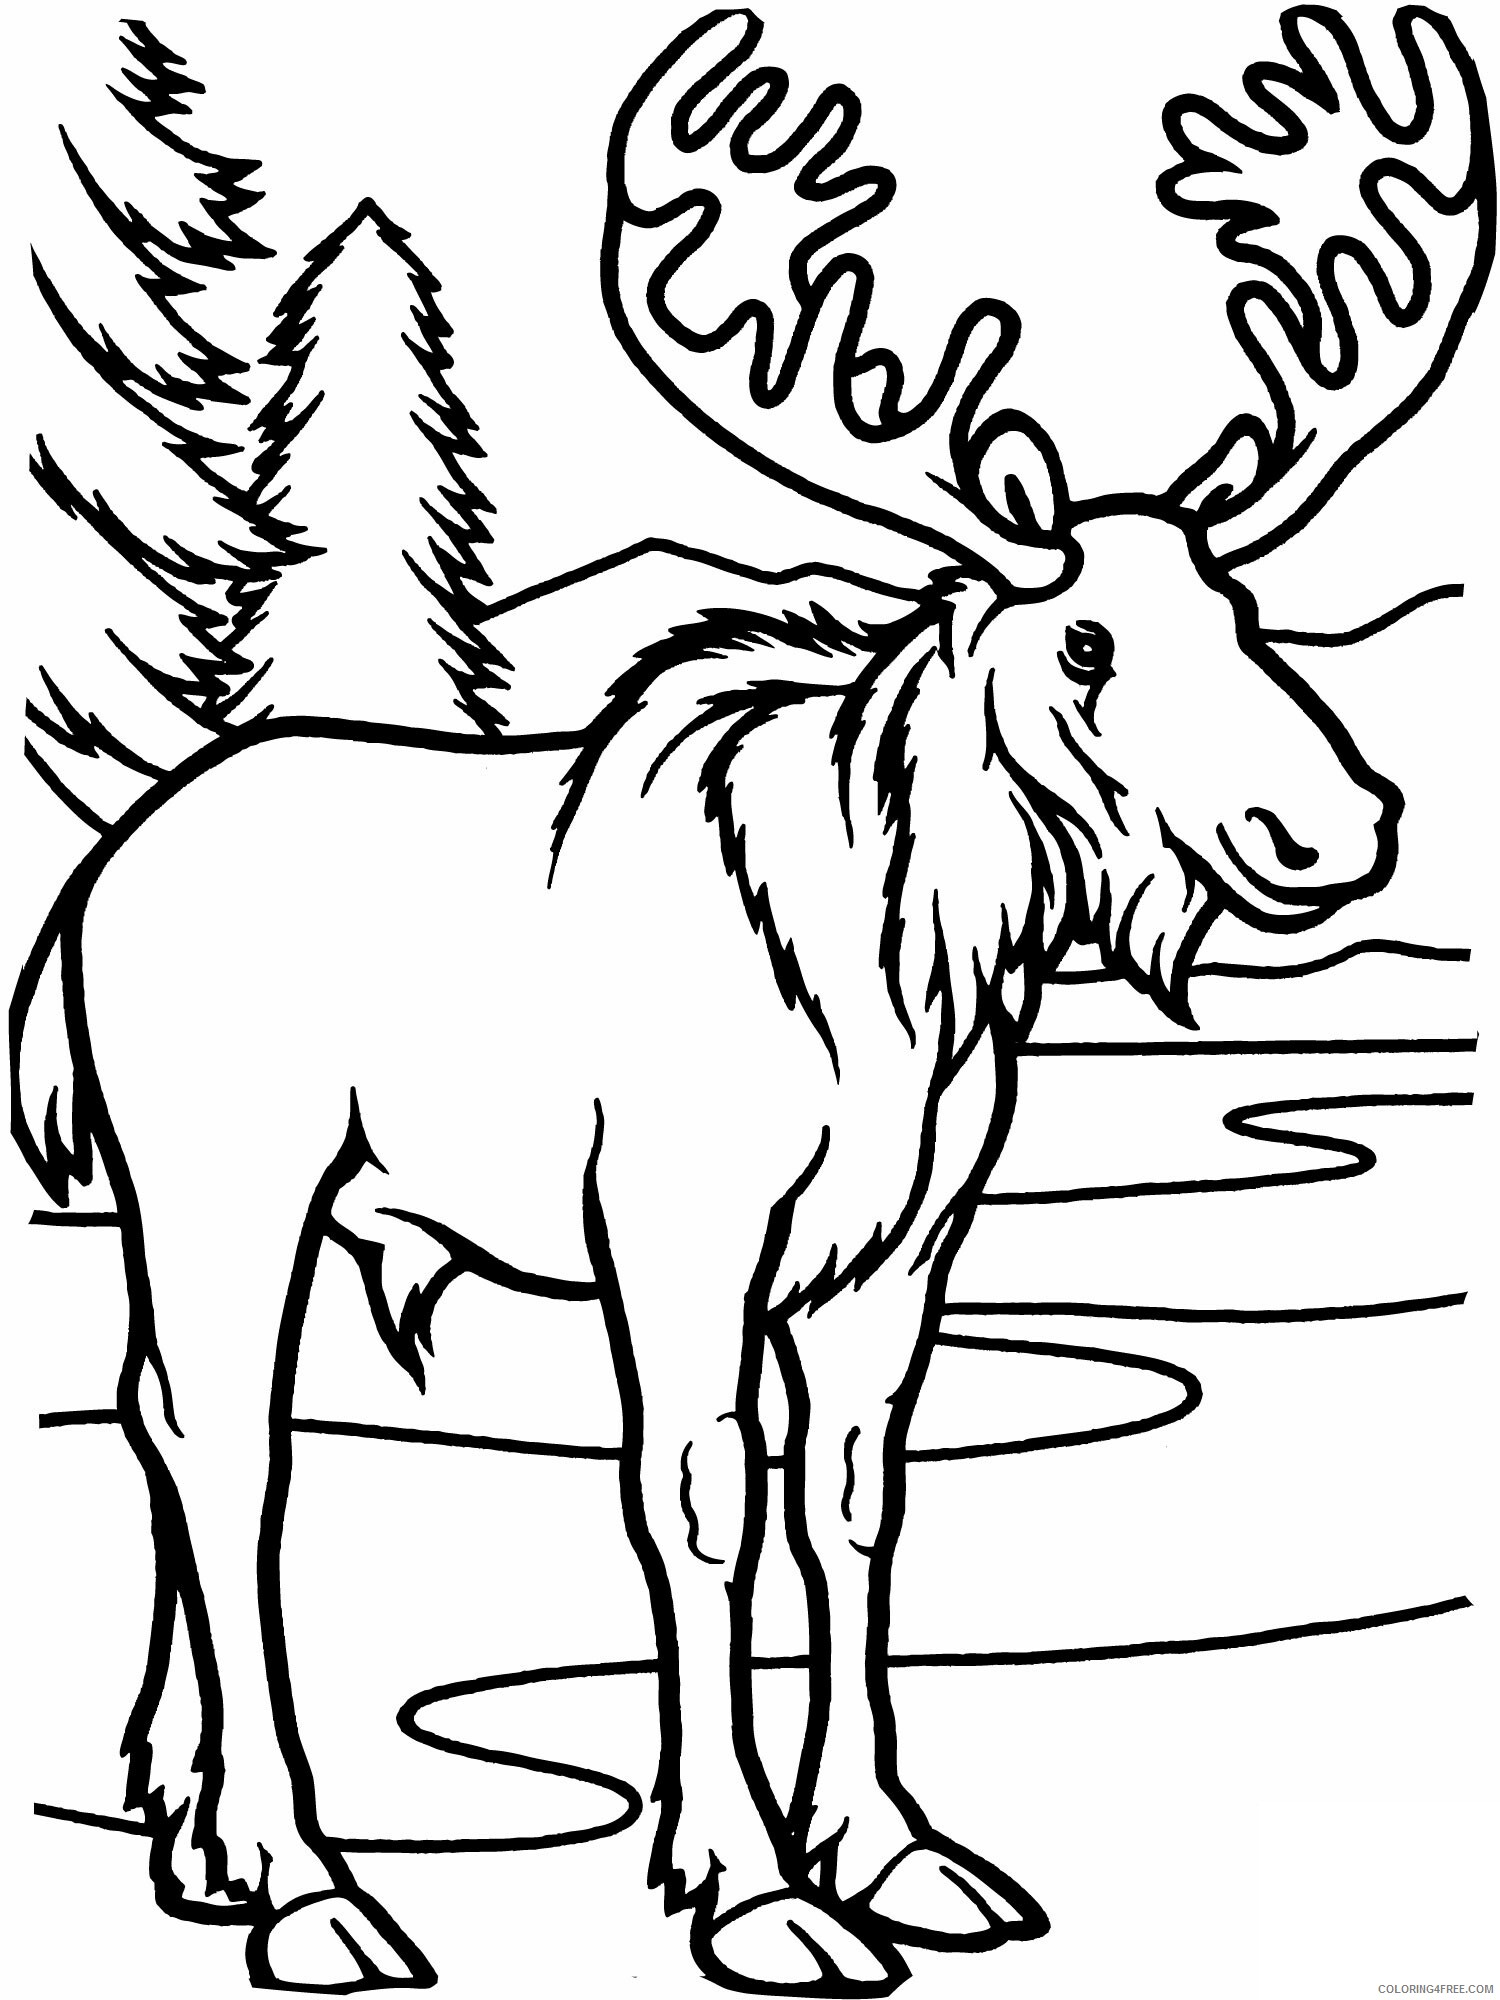 Moose Coloring Pages Animal Printable Sheets Bull Moose 2021 3364 Coloring4free